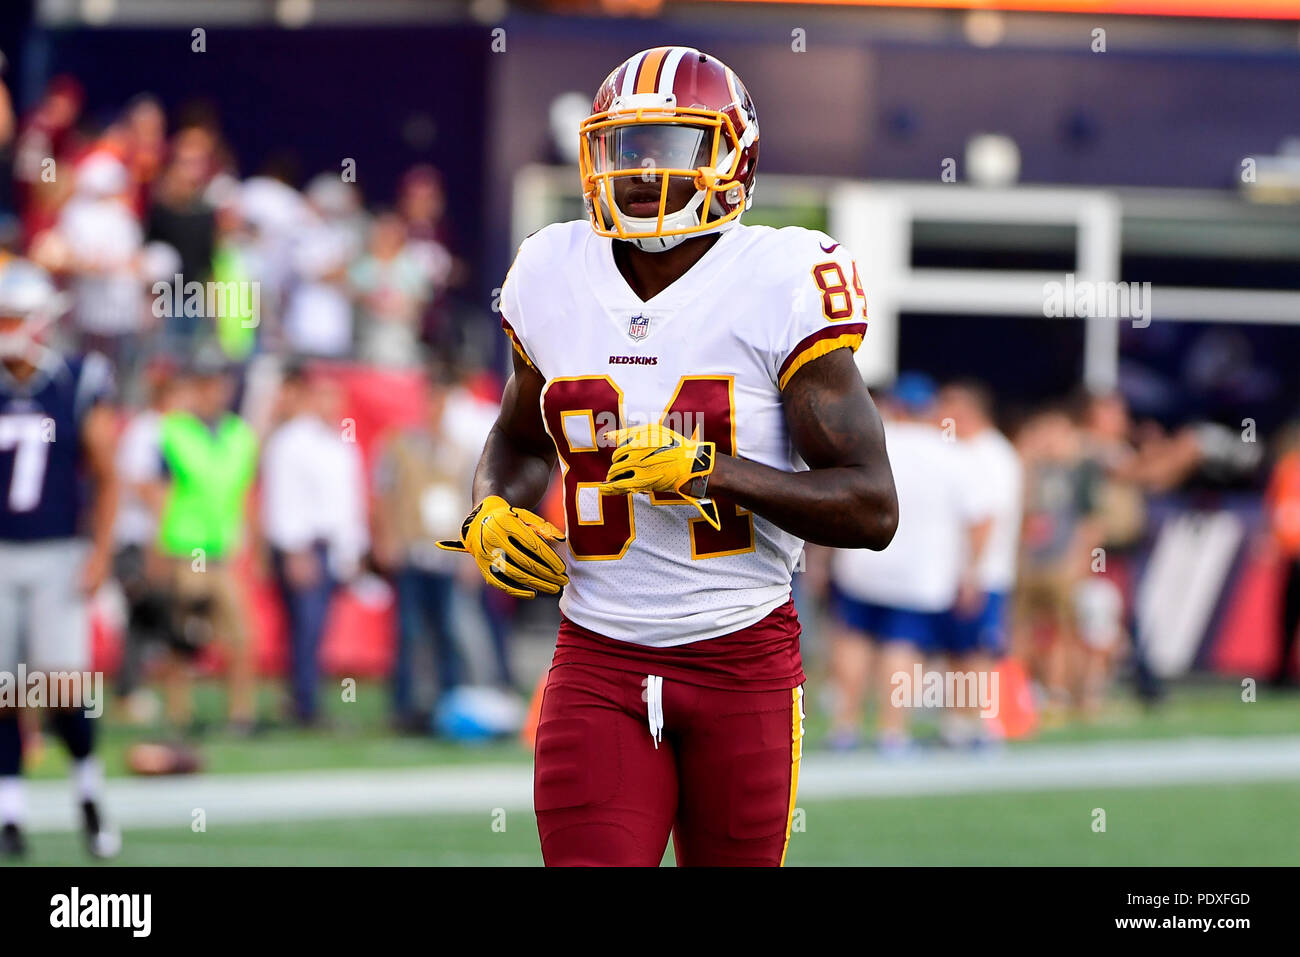 reputable site 7e0a7 0409d August 9, 2018: Washington Redskins wide receiver Darvin ...